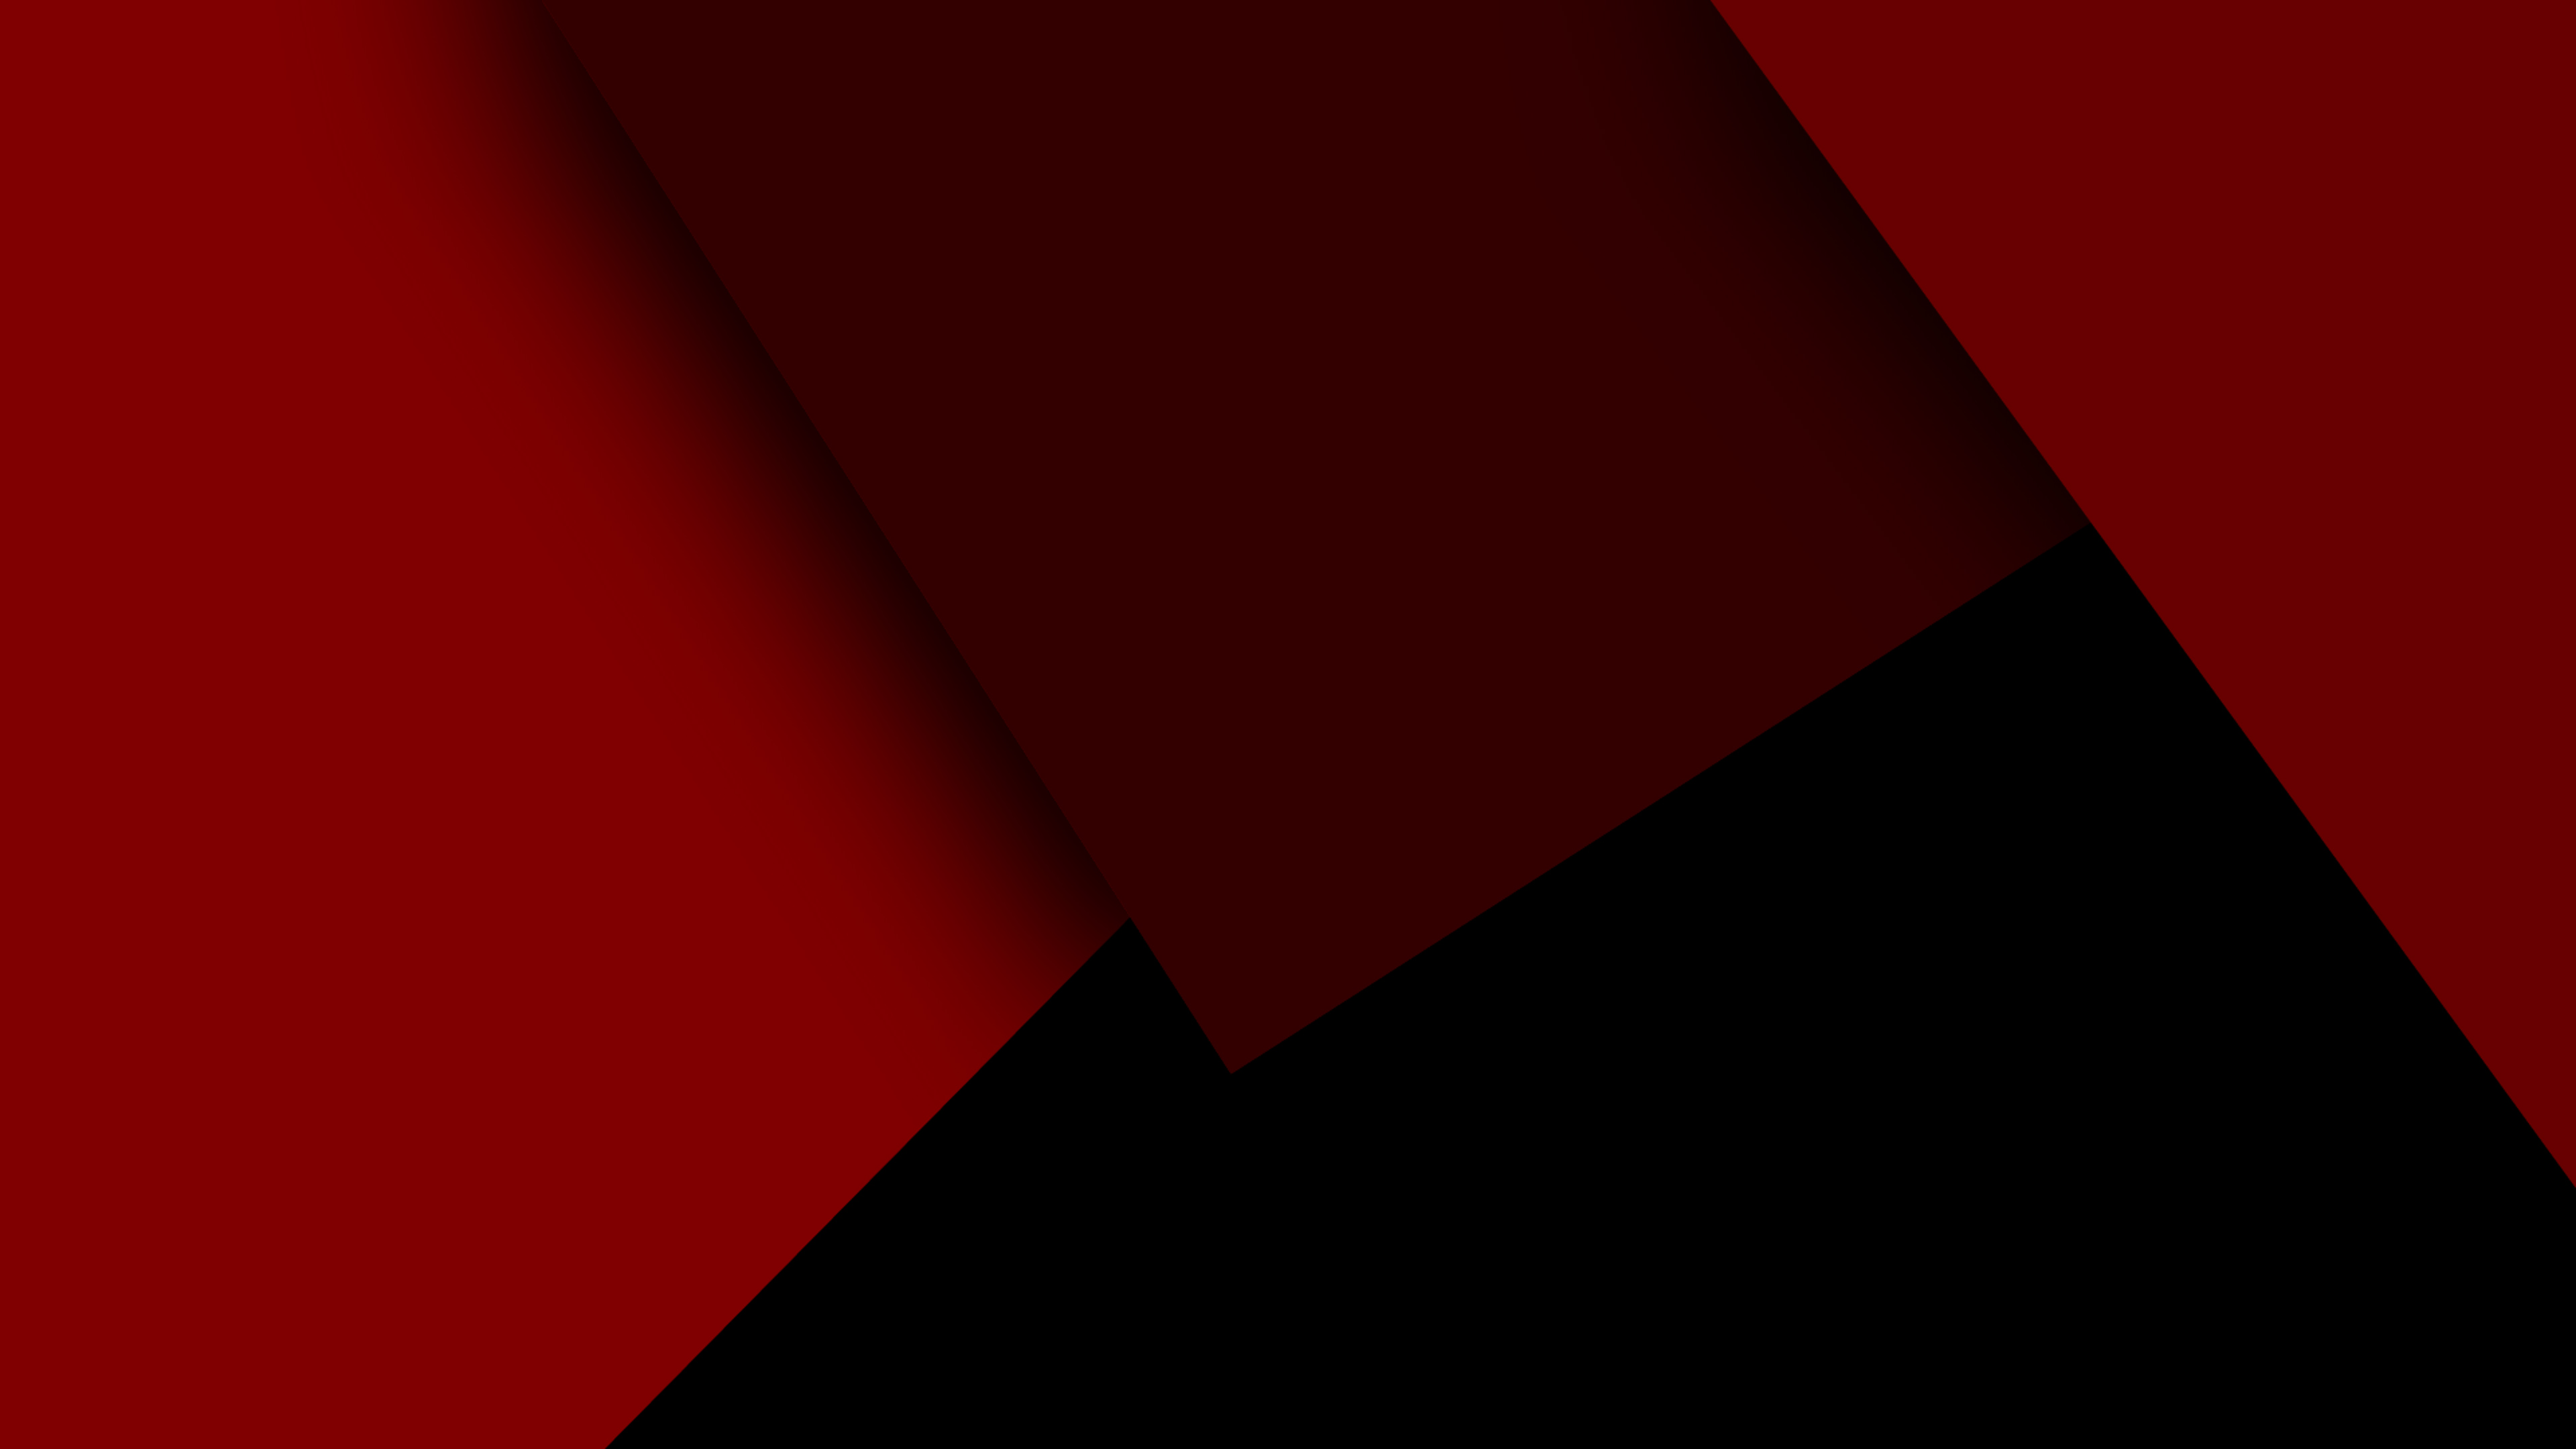 4k Wallpaper Red And Black